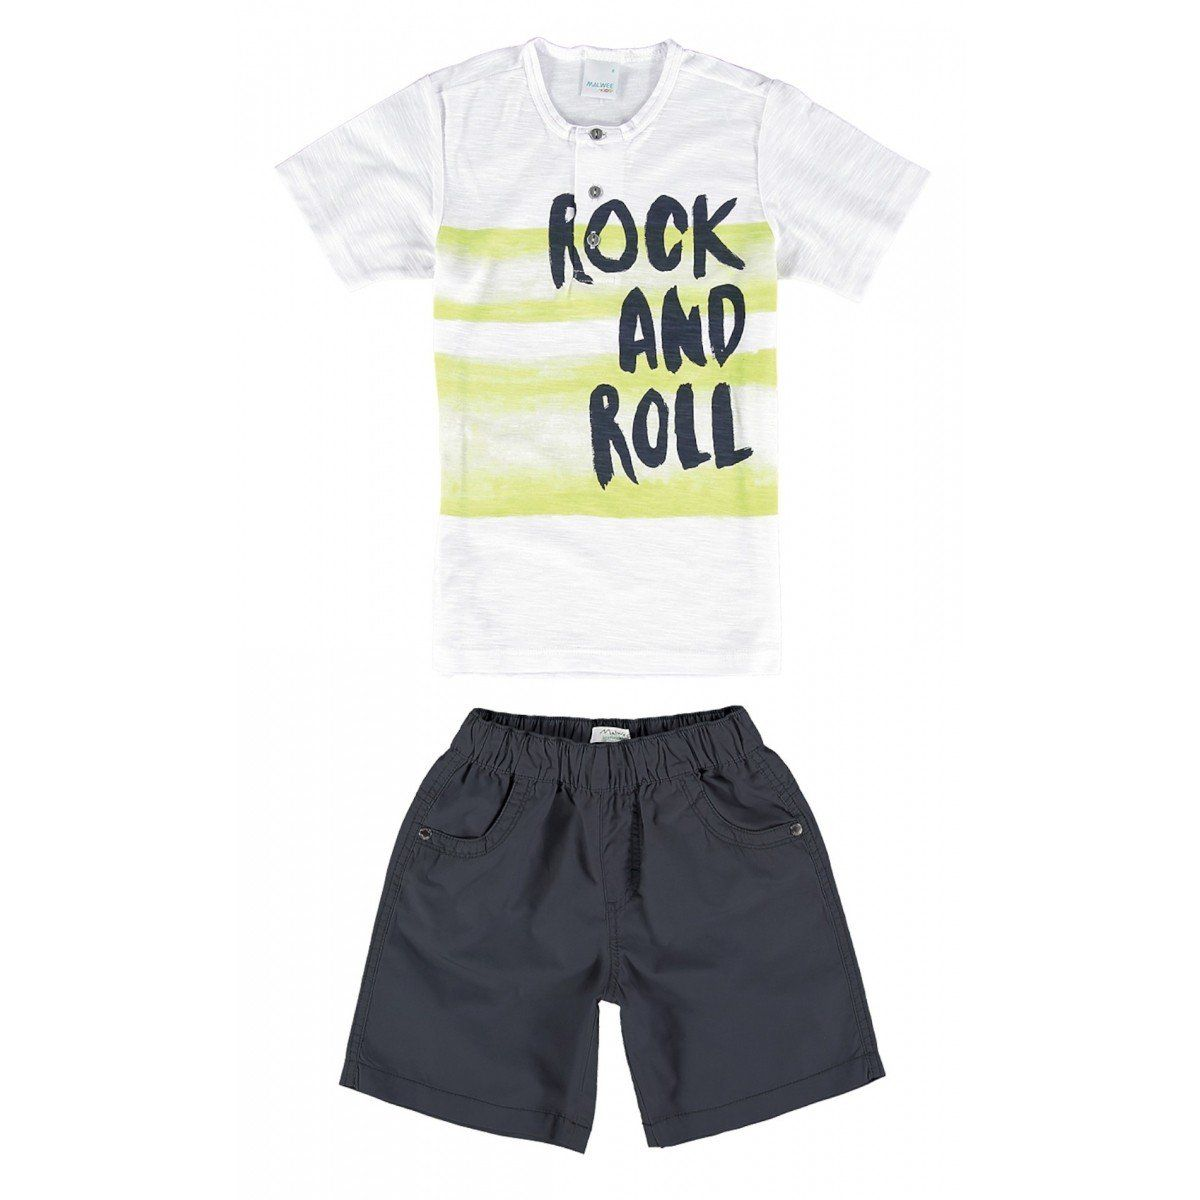 Conjunto Infantil Masculino Branco Rock And Roll Malwee